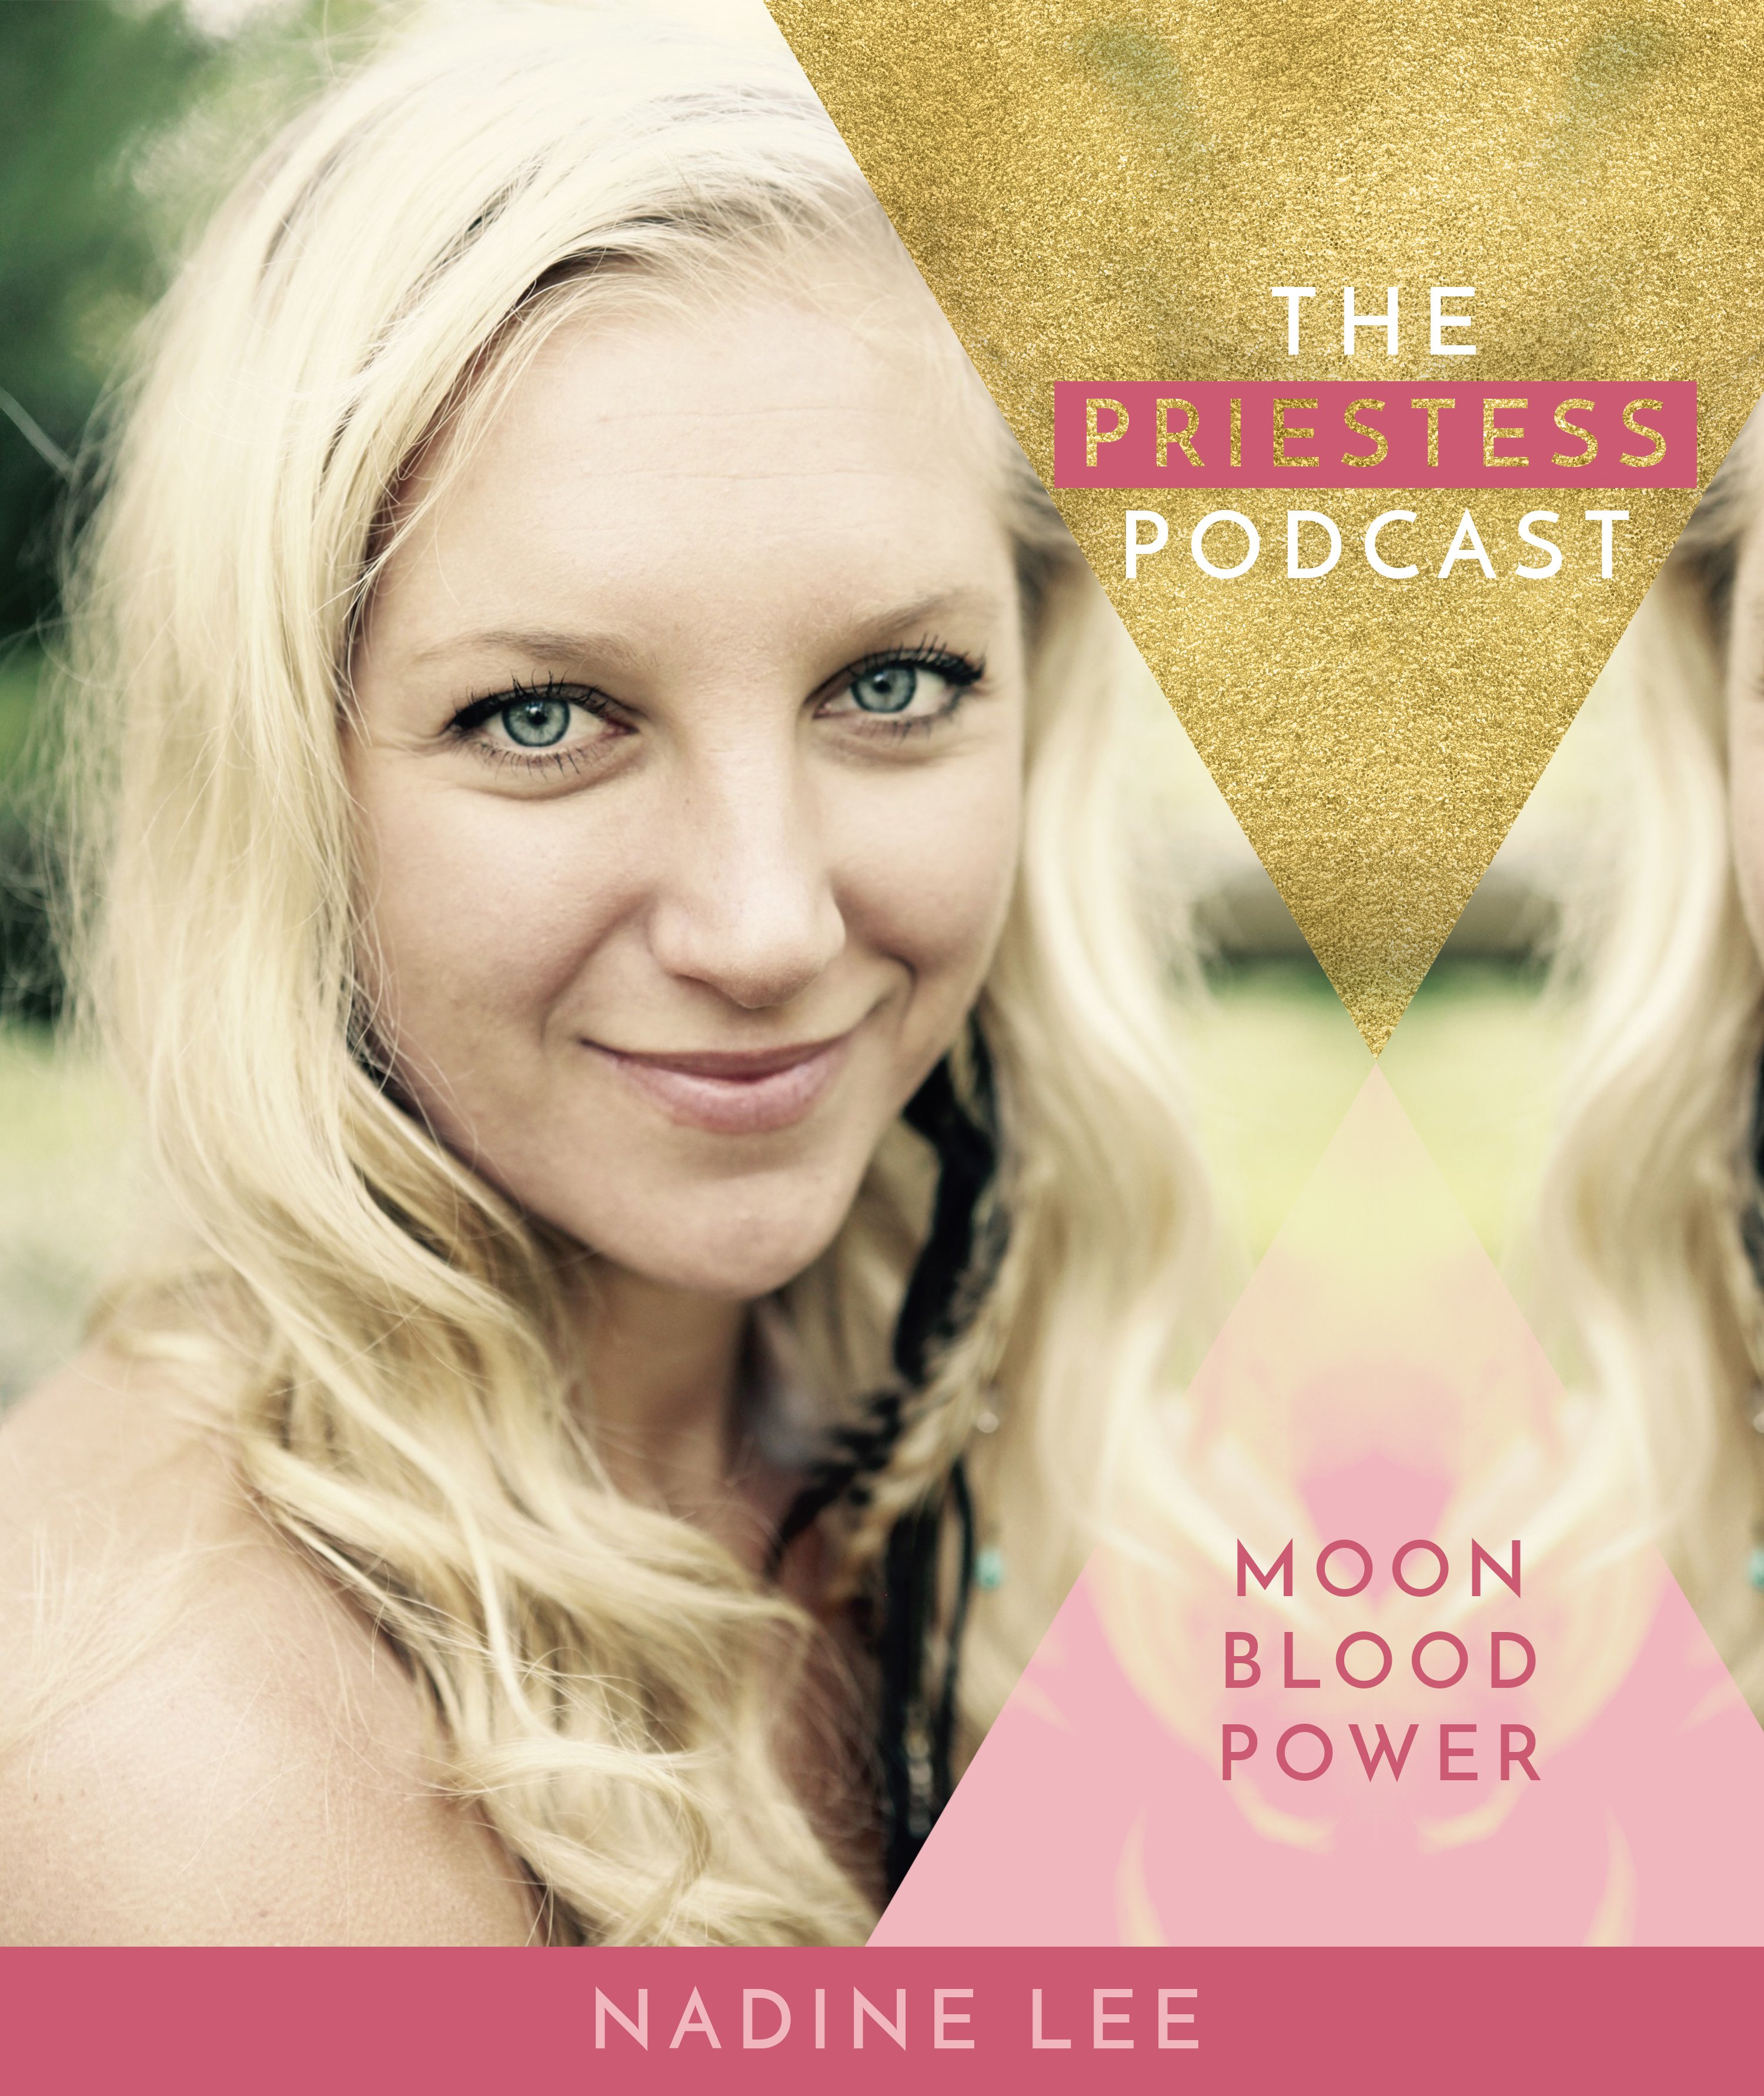 Nadine Lee on Moon Blood Power